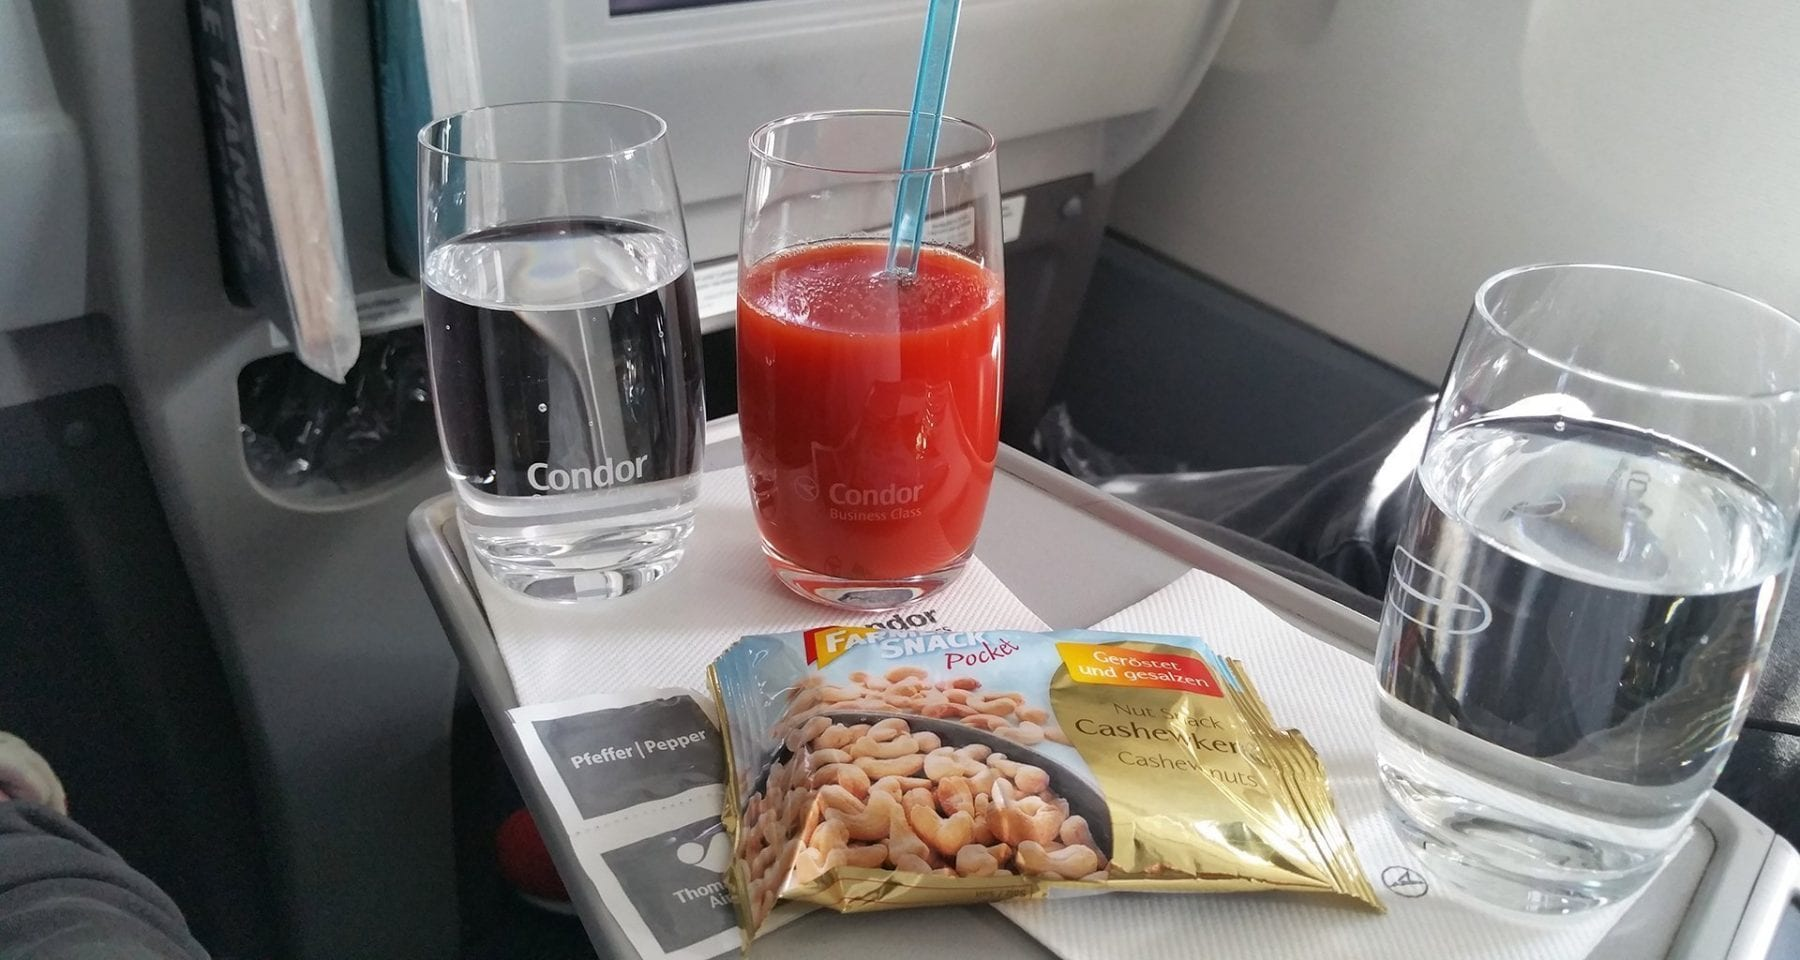 condor airlines business class drink and snack service